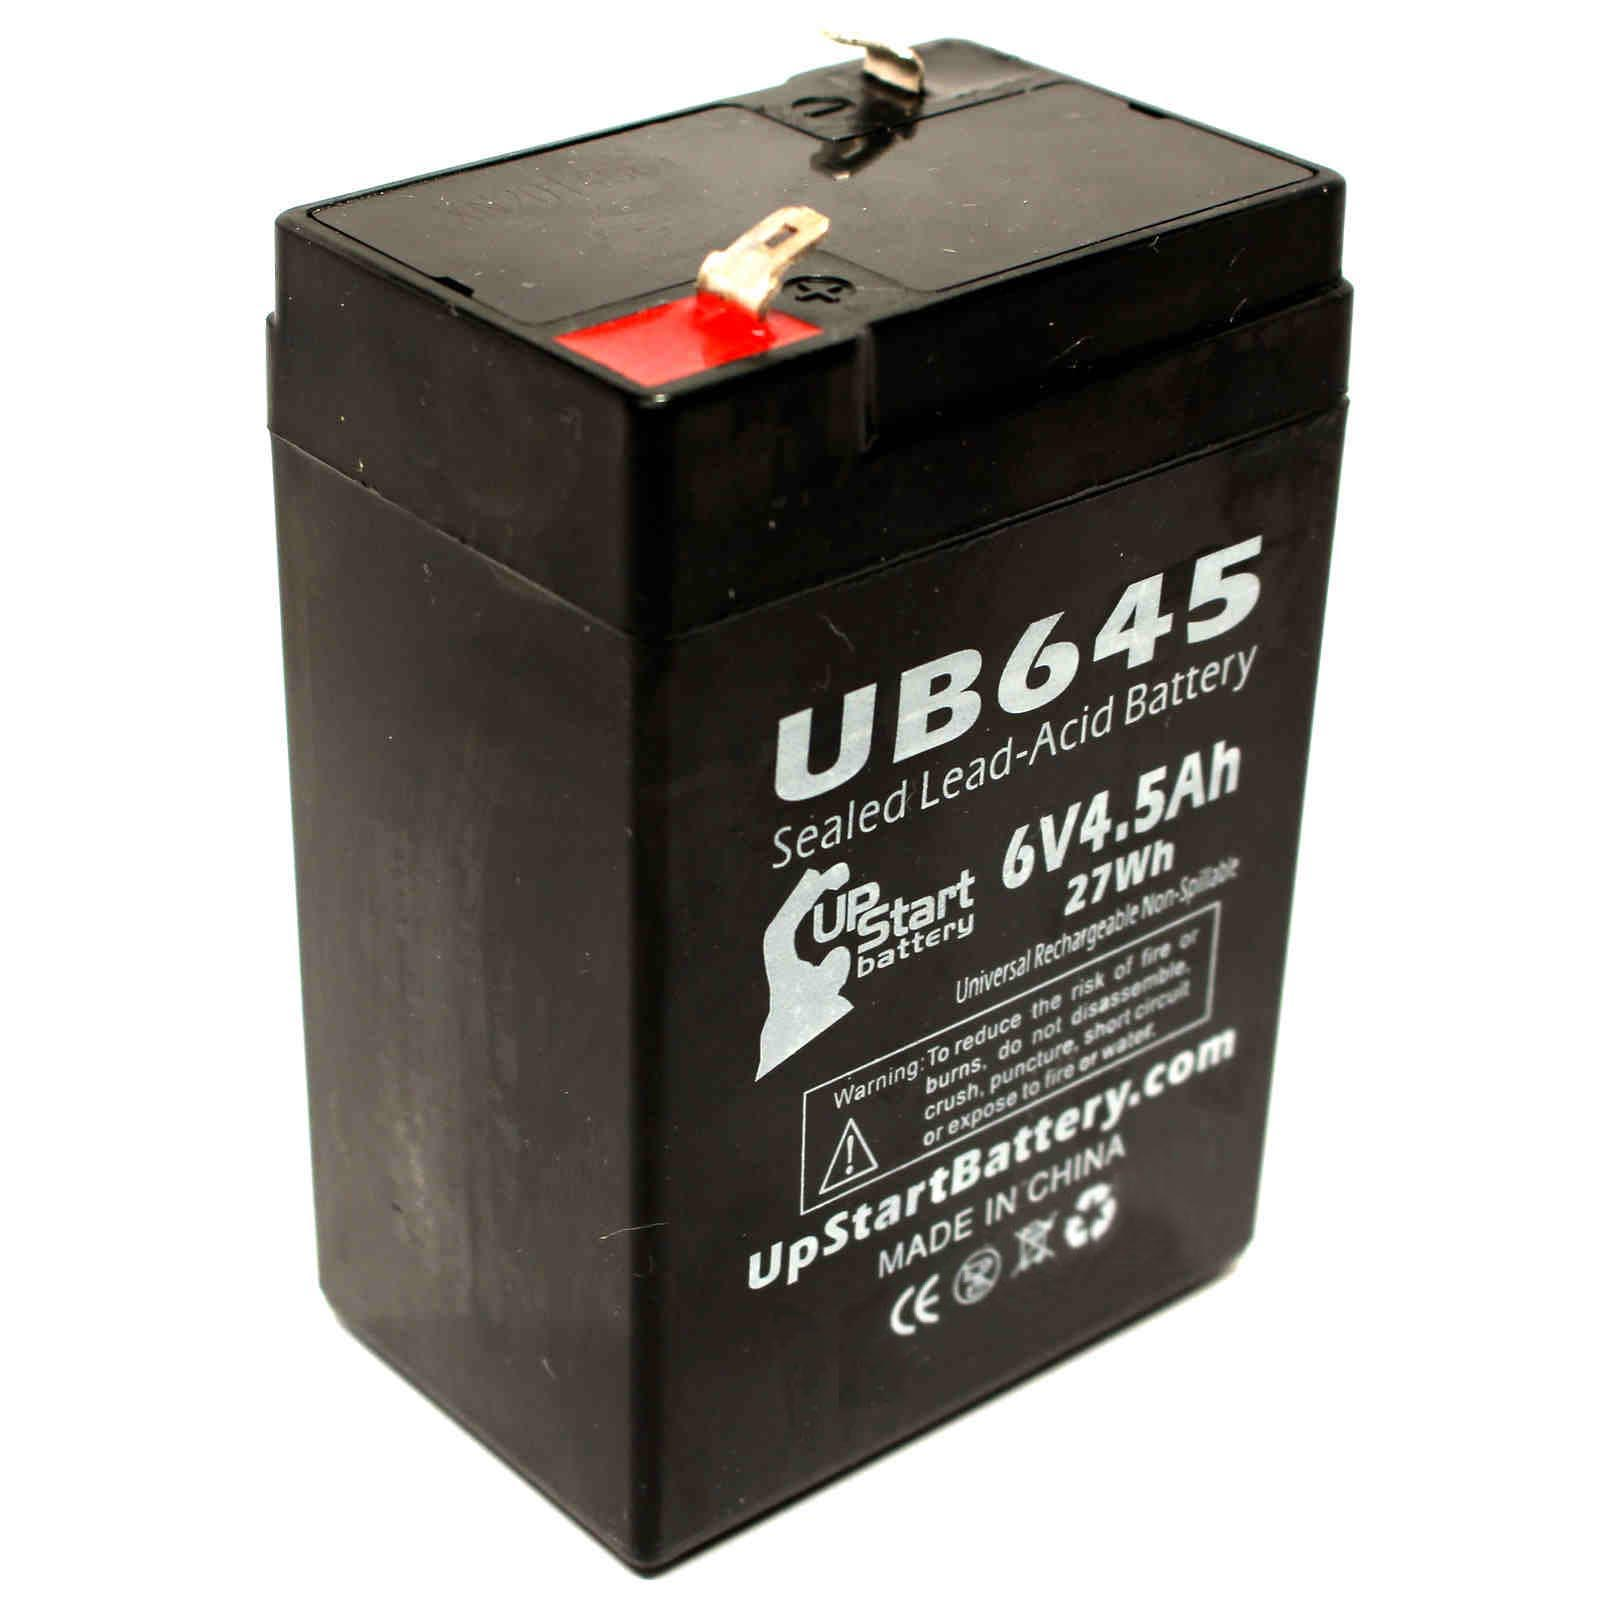 Zeus PC4.5-6F1 Battery Replacement - UB645 Universal Sealed Lead Acid Battery (6V, 4.5Ah, 4500mAh, F1 Terminal, AGM, SLA) - Includes TWO F1 to F2 Terminal Adapters - image 4 de 4